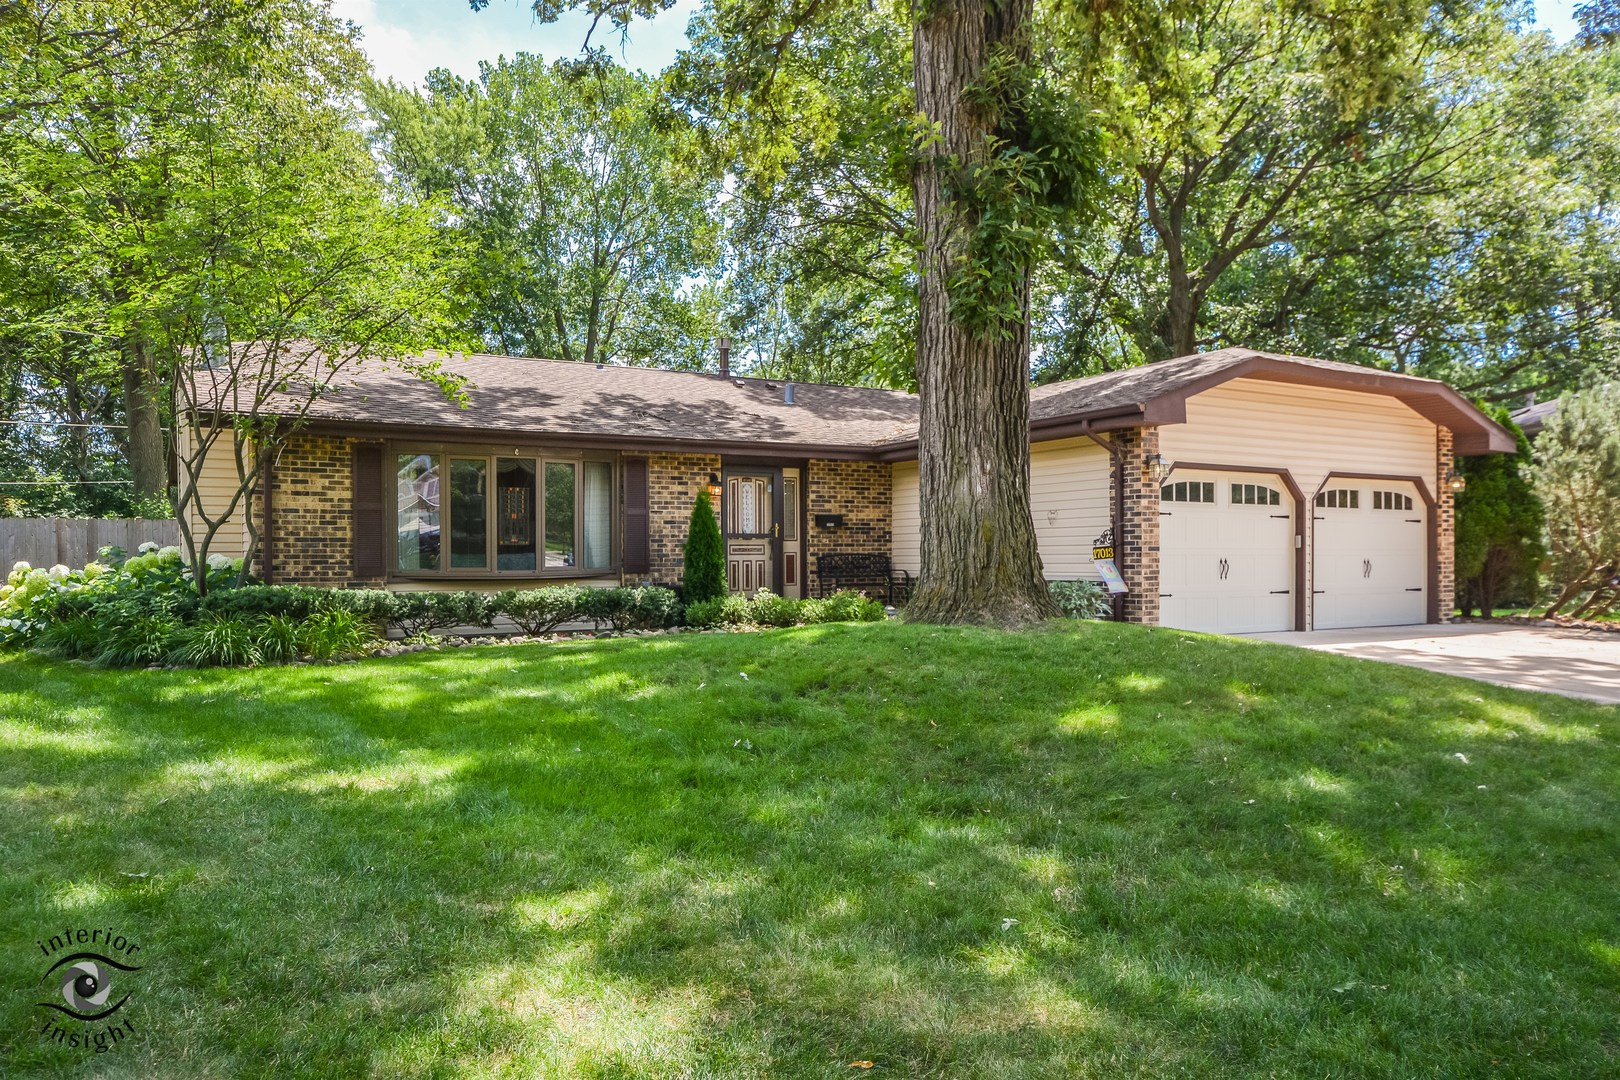 17013 Gaynelle Road, Tinley Park in Cook County, IL 60477 Home for Sale